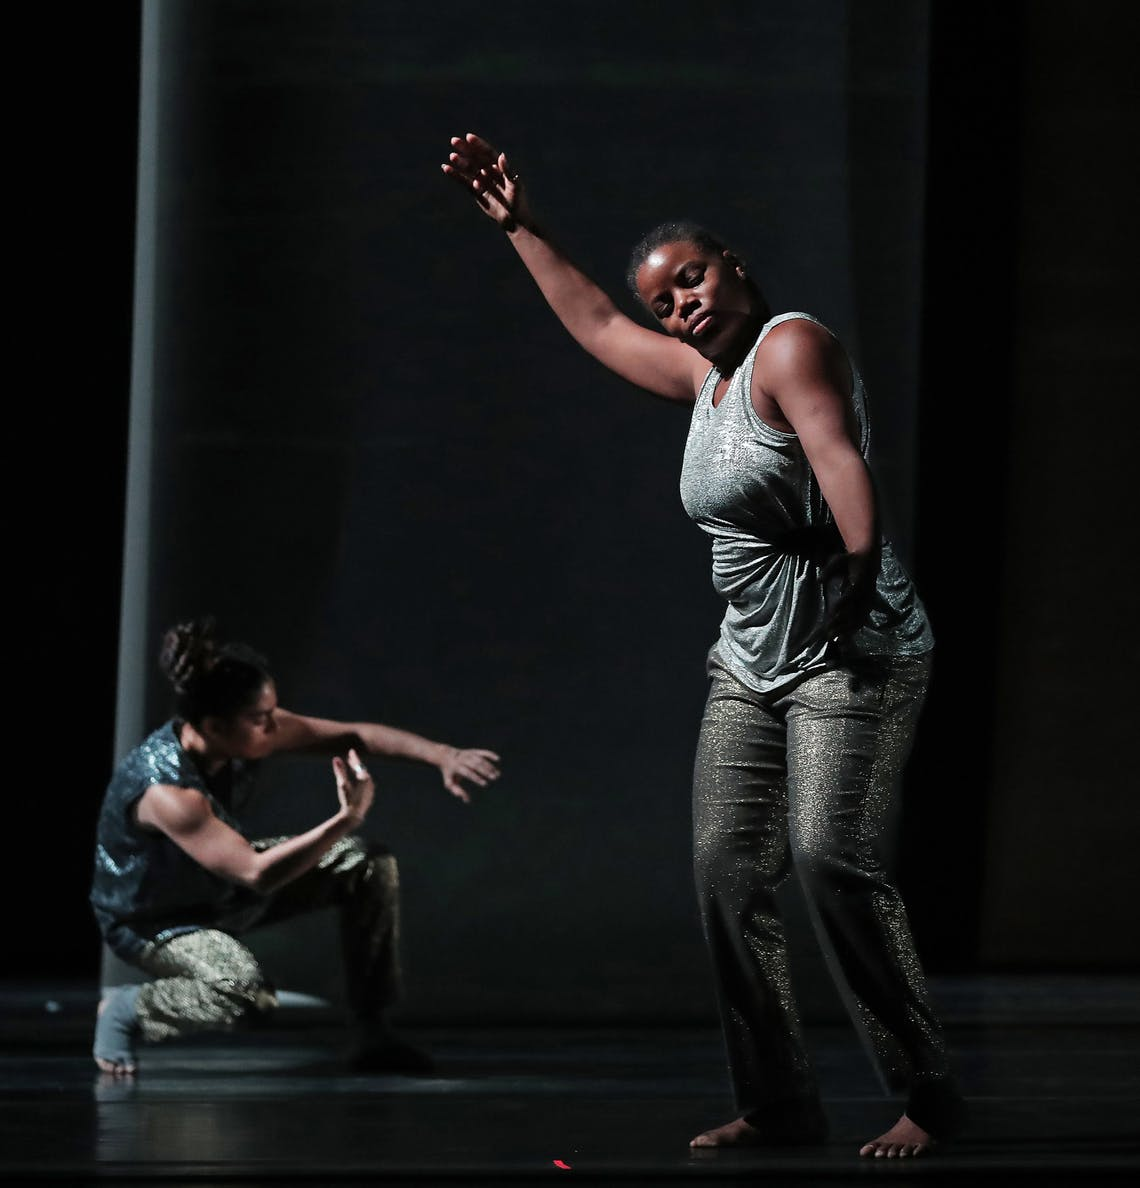 """DAVID.JOLES@STARTRIBUNE.COM Performers Leslie Parker, front, and, Zoë Klein were fluid and captivating during a dress rehearsal for """"Weave."""""""